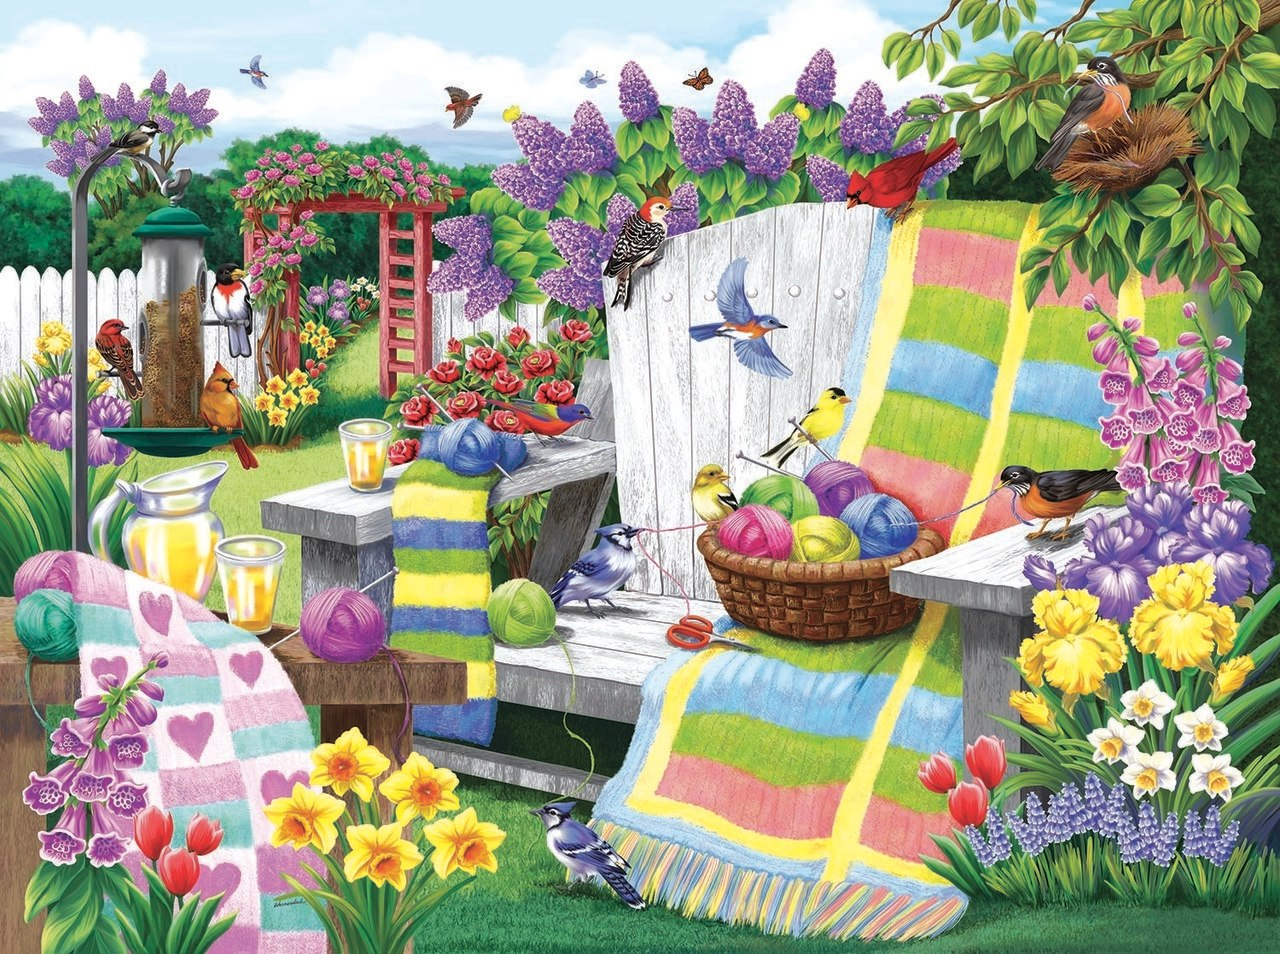 The Many Colors of Spring - 1000pc Jigsaw Puzzle By Sunsout  			  					NEW